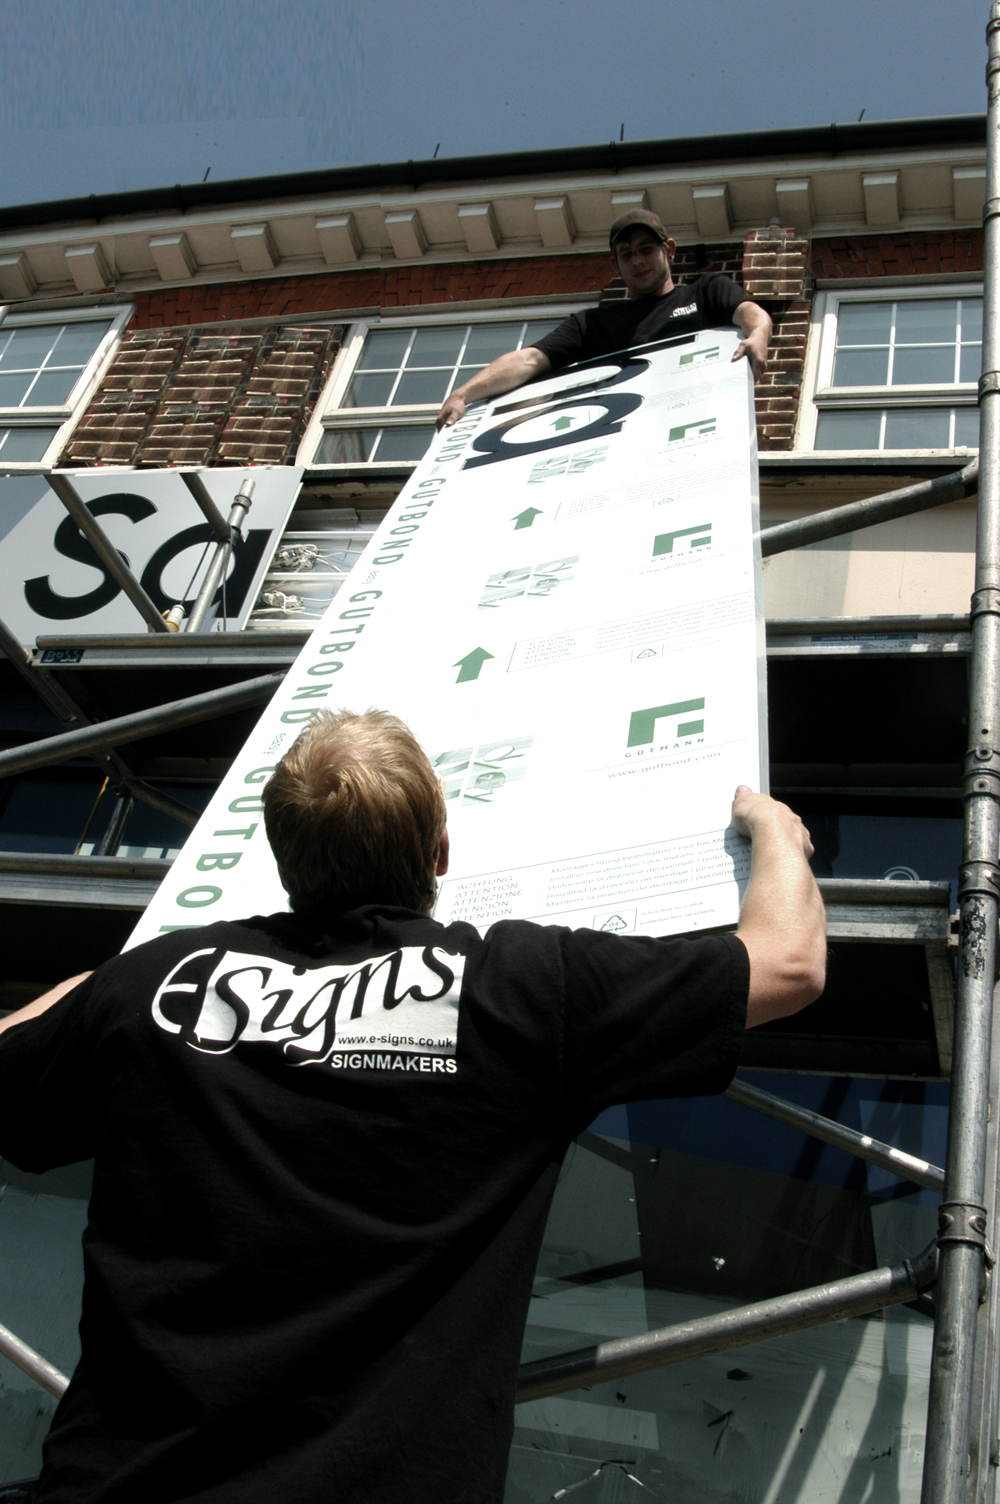 Door Signs E Signs ® www.e-signs.co.uk sign installers in London